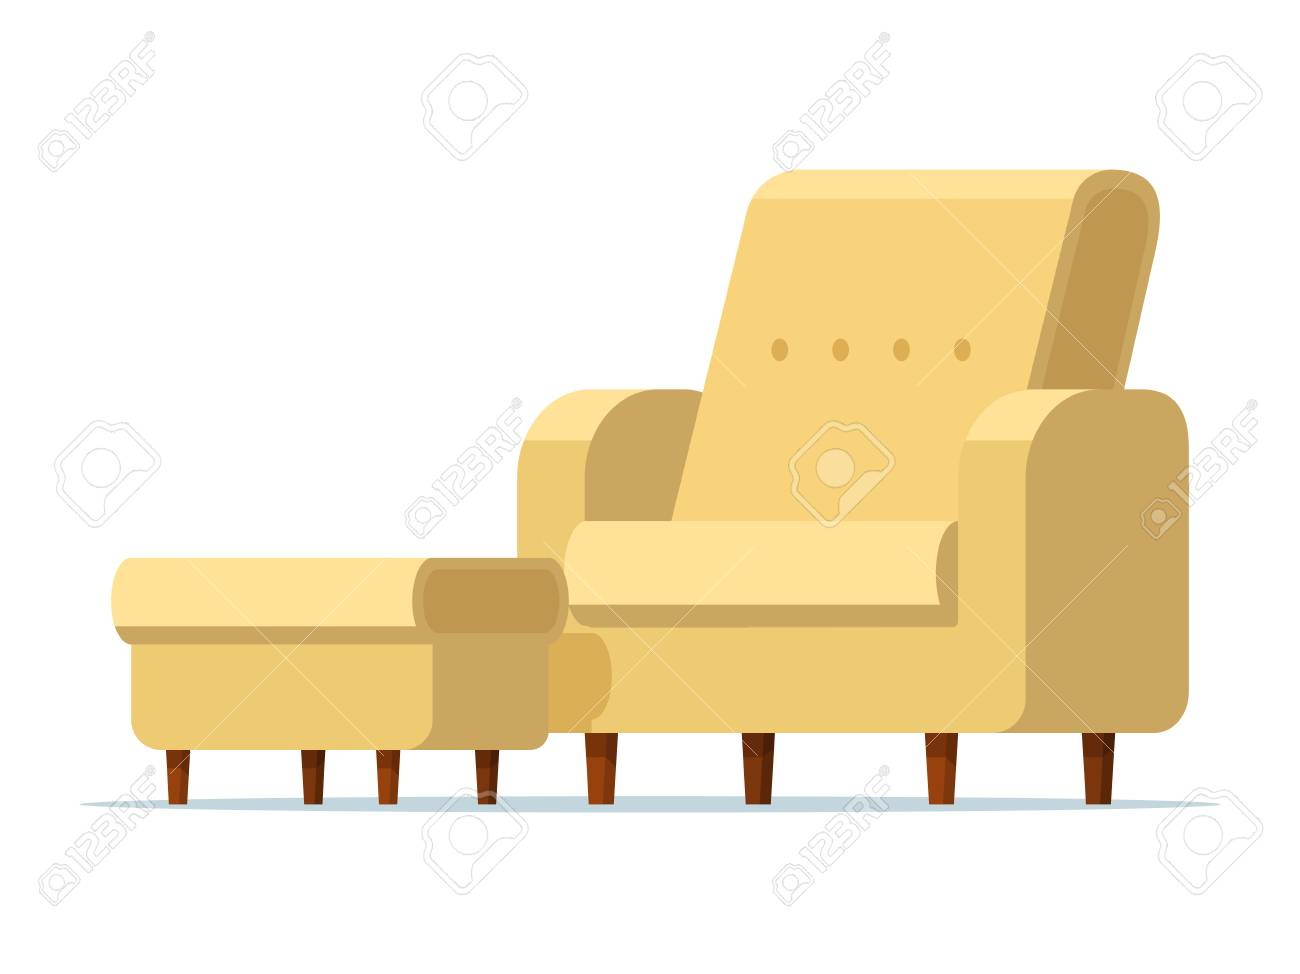 Vector illustration of a light yellow chair with a padded stool. Isolated white background. Empty armchair with a soft ottoman. Sofa chair with footstool. Flat style. - 110032285